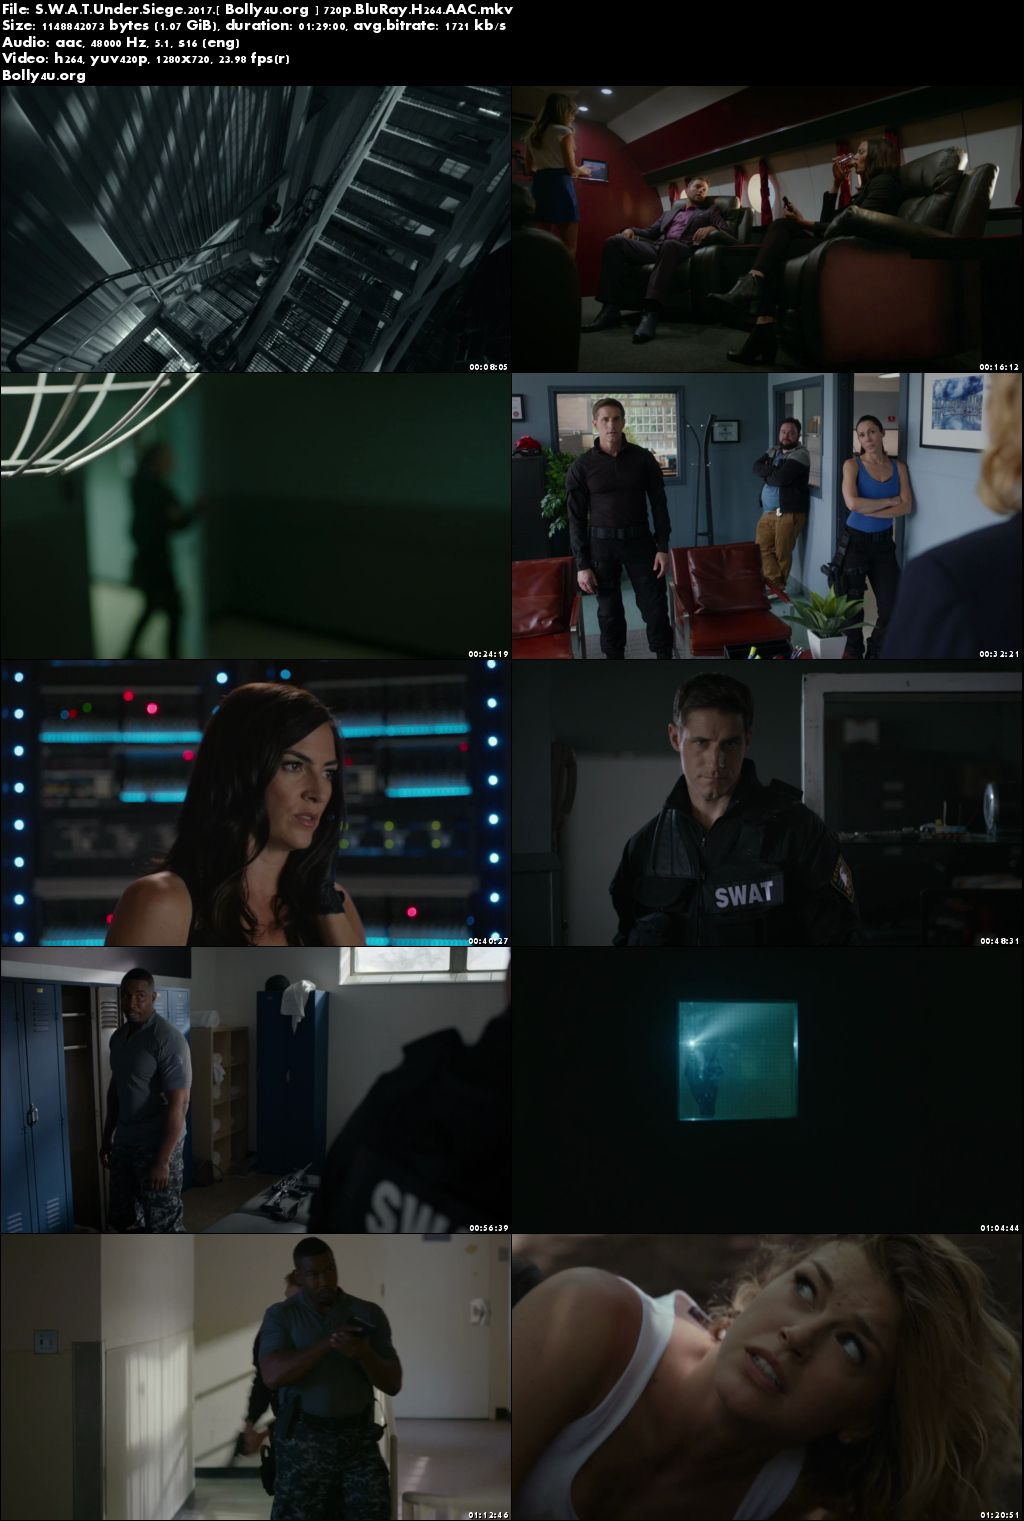 S.W.A.T Under Siege 2017 BluRay Full English Movie Download 720p